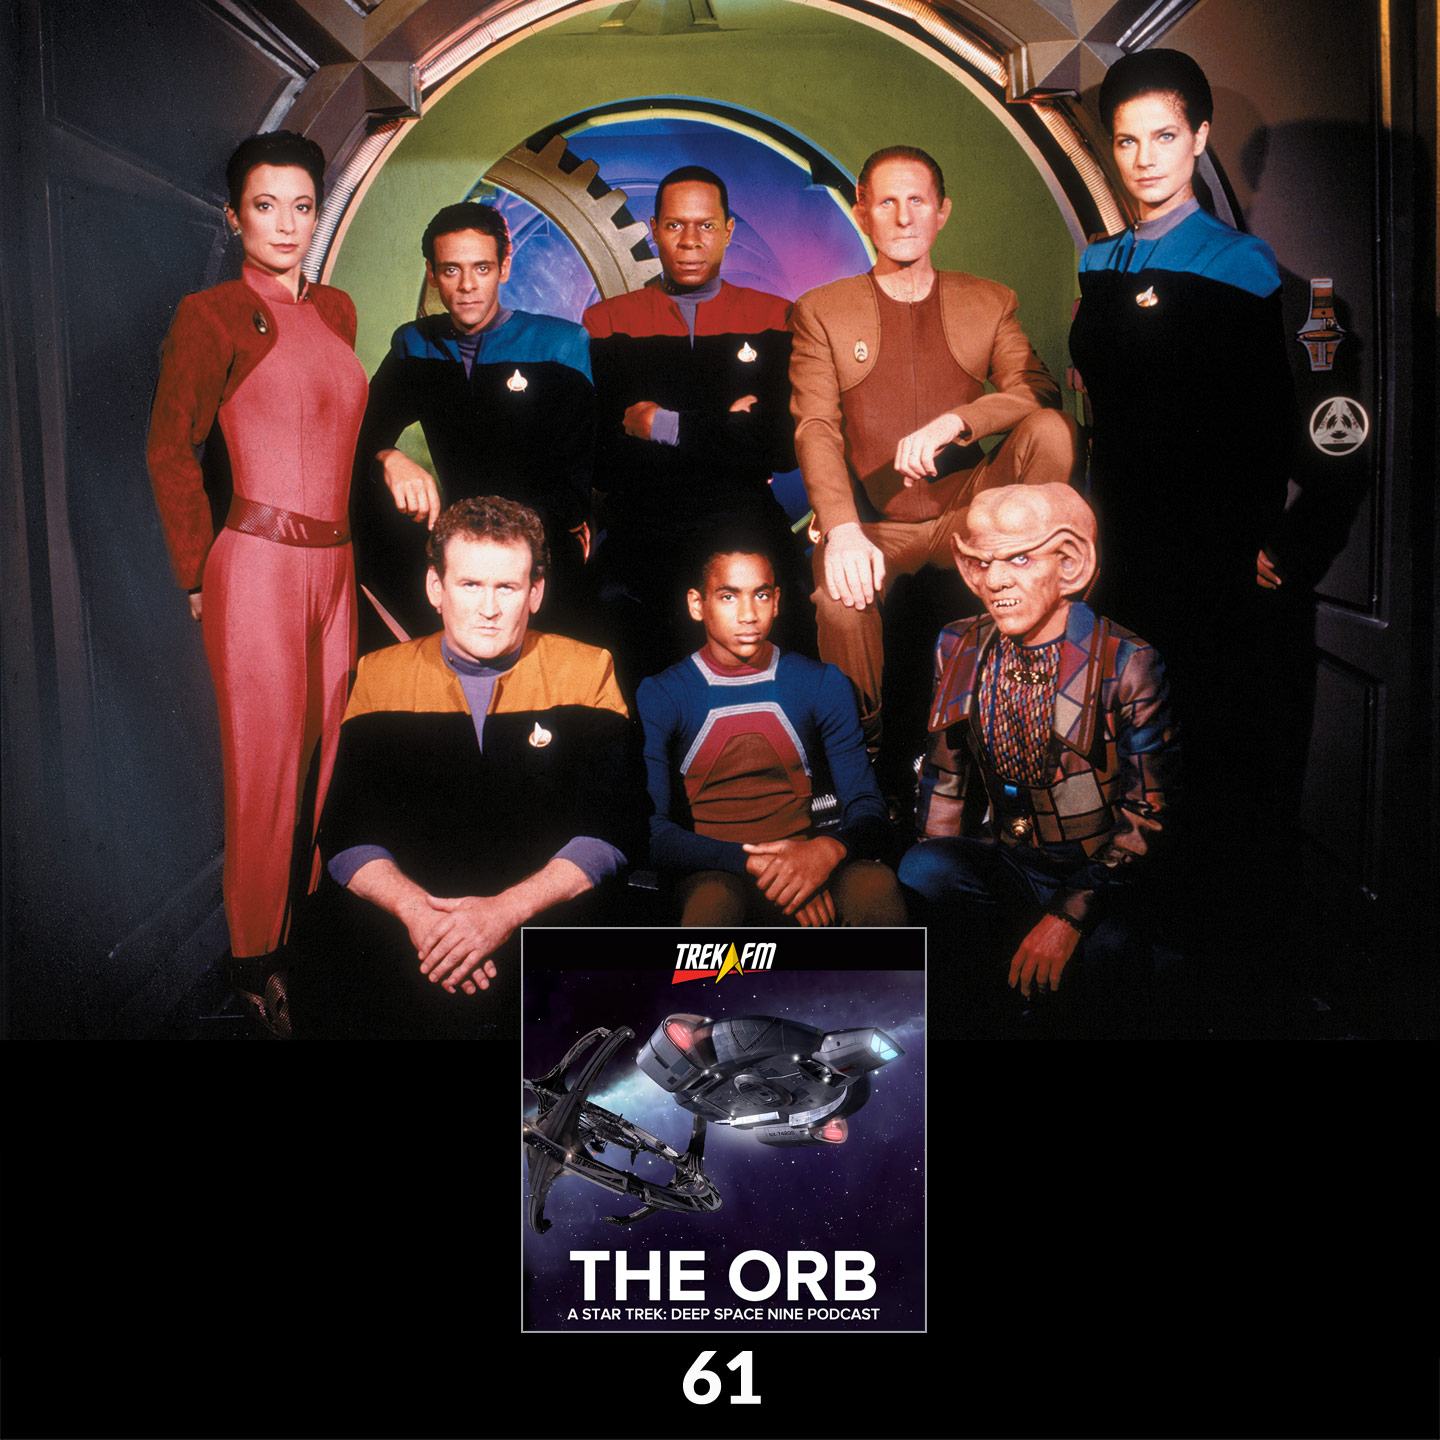 The Orb 61: Somehow the Goatee Finds You